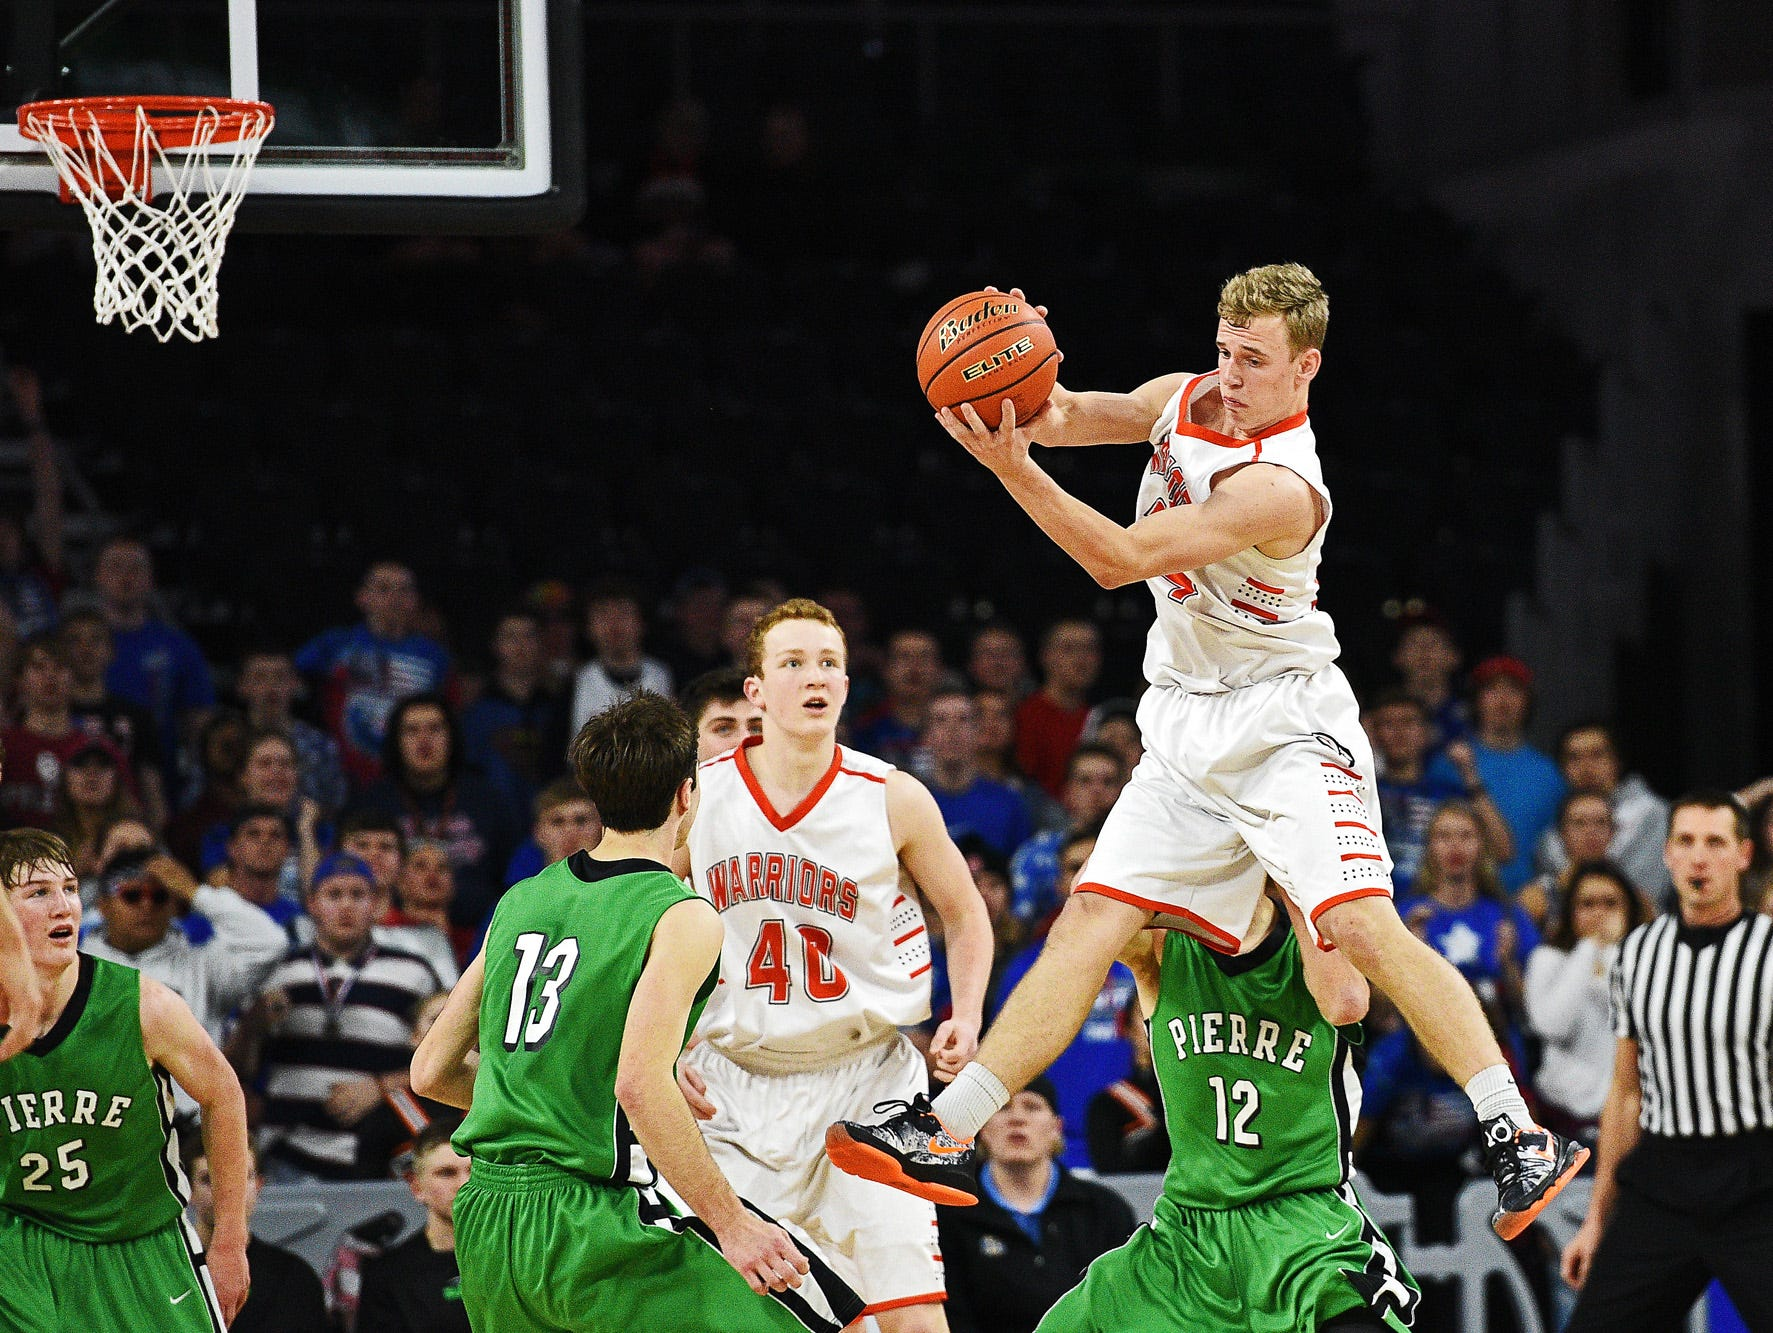 Washington's Logan Uttecht (24) pulls down a rebound during a South Dakota Class AA State Boys Basketball Tournament semifinal game against Pierre Friday, March 18, 2016, at the Denny Sanford Premier Center in Sioux Falls. Washington beat Pierre 61 to 57.